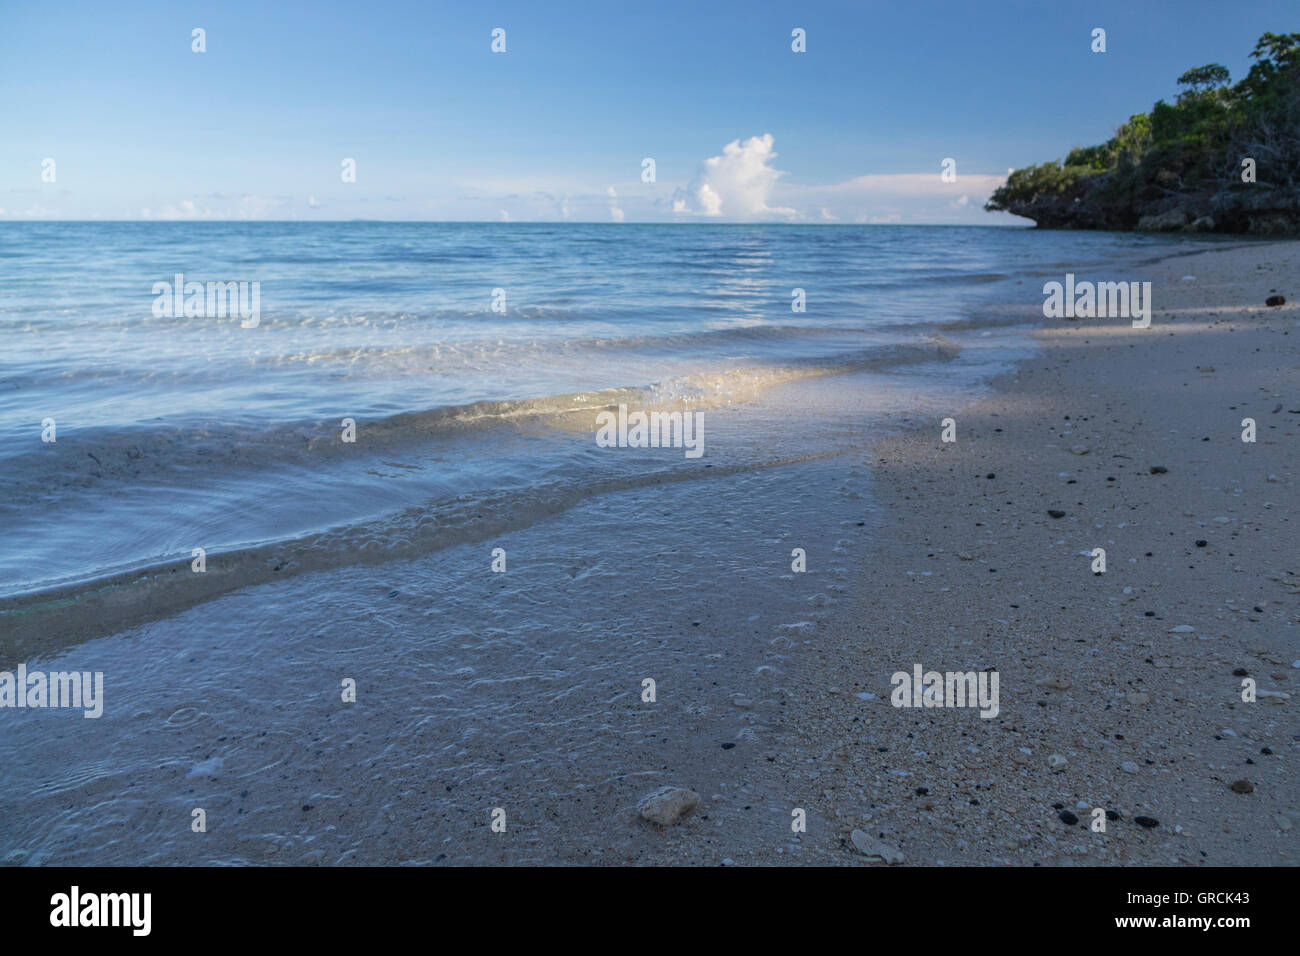 Tiny Waves In Gentle Light Wash Ashore The Sandy Beach Of Selayar - Stock Image